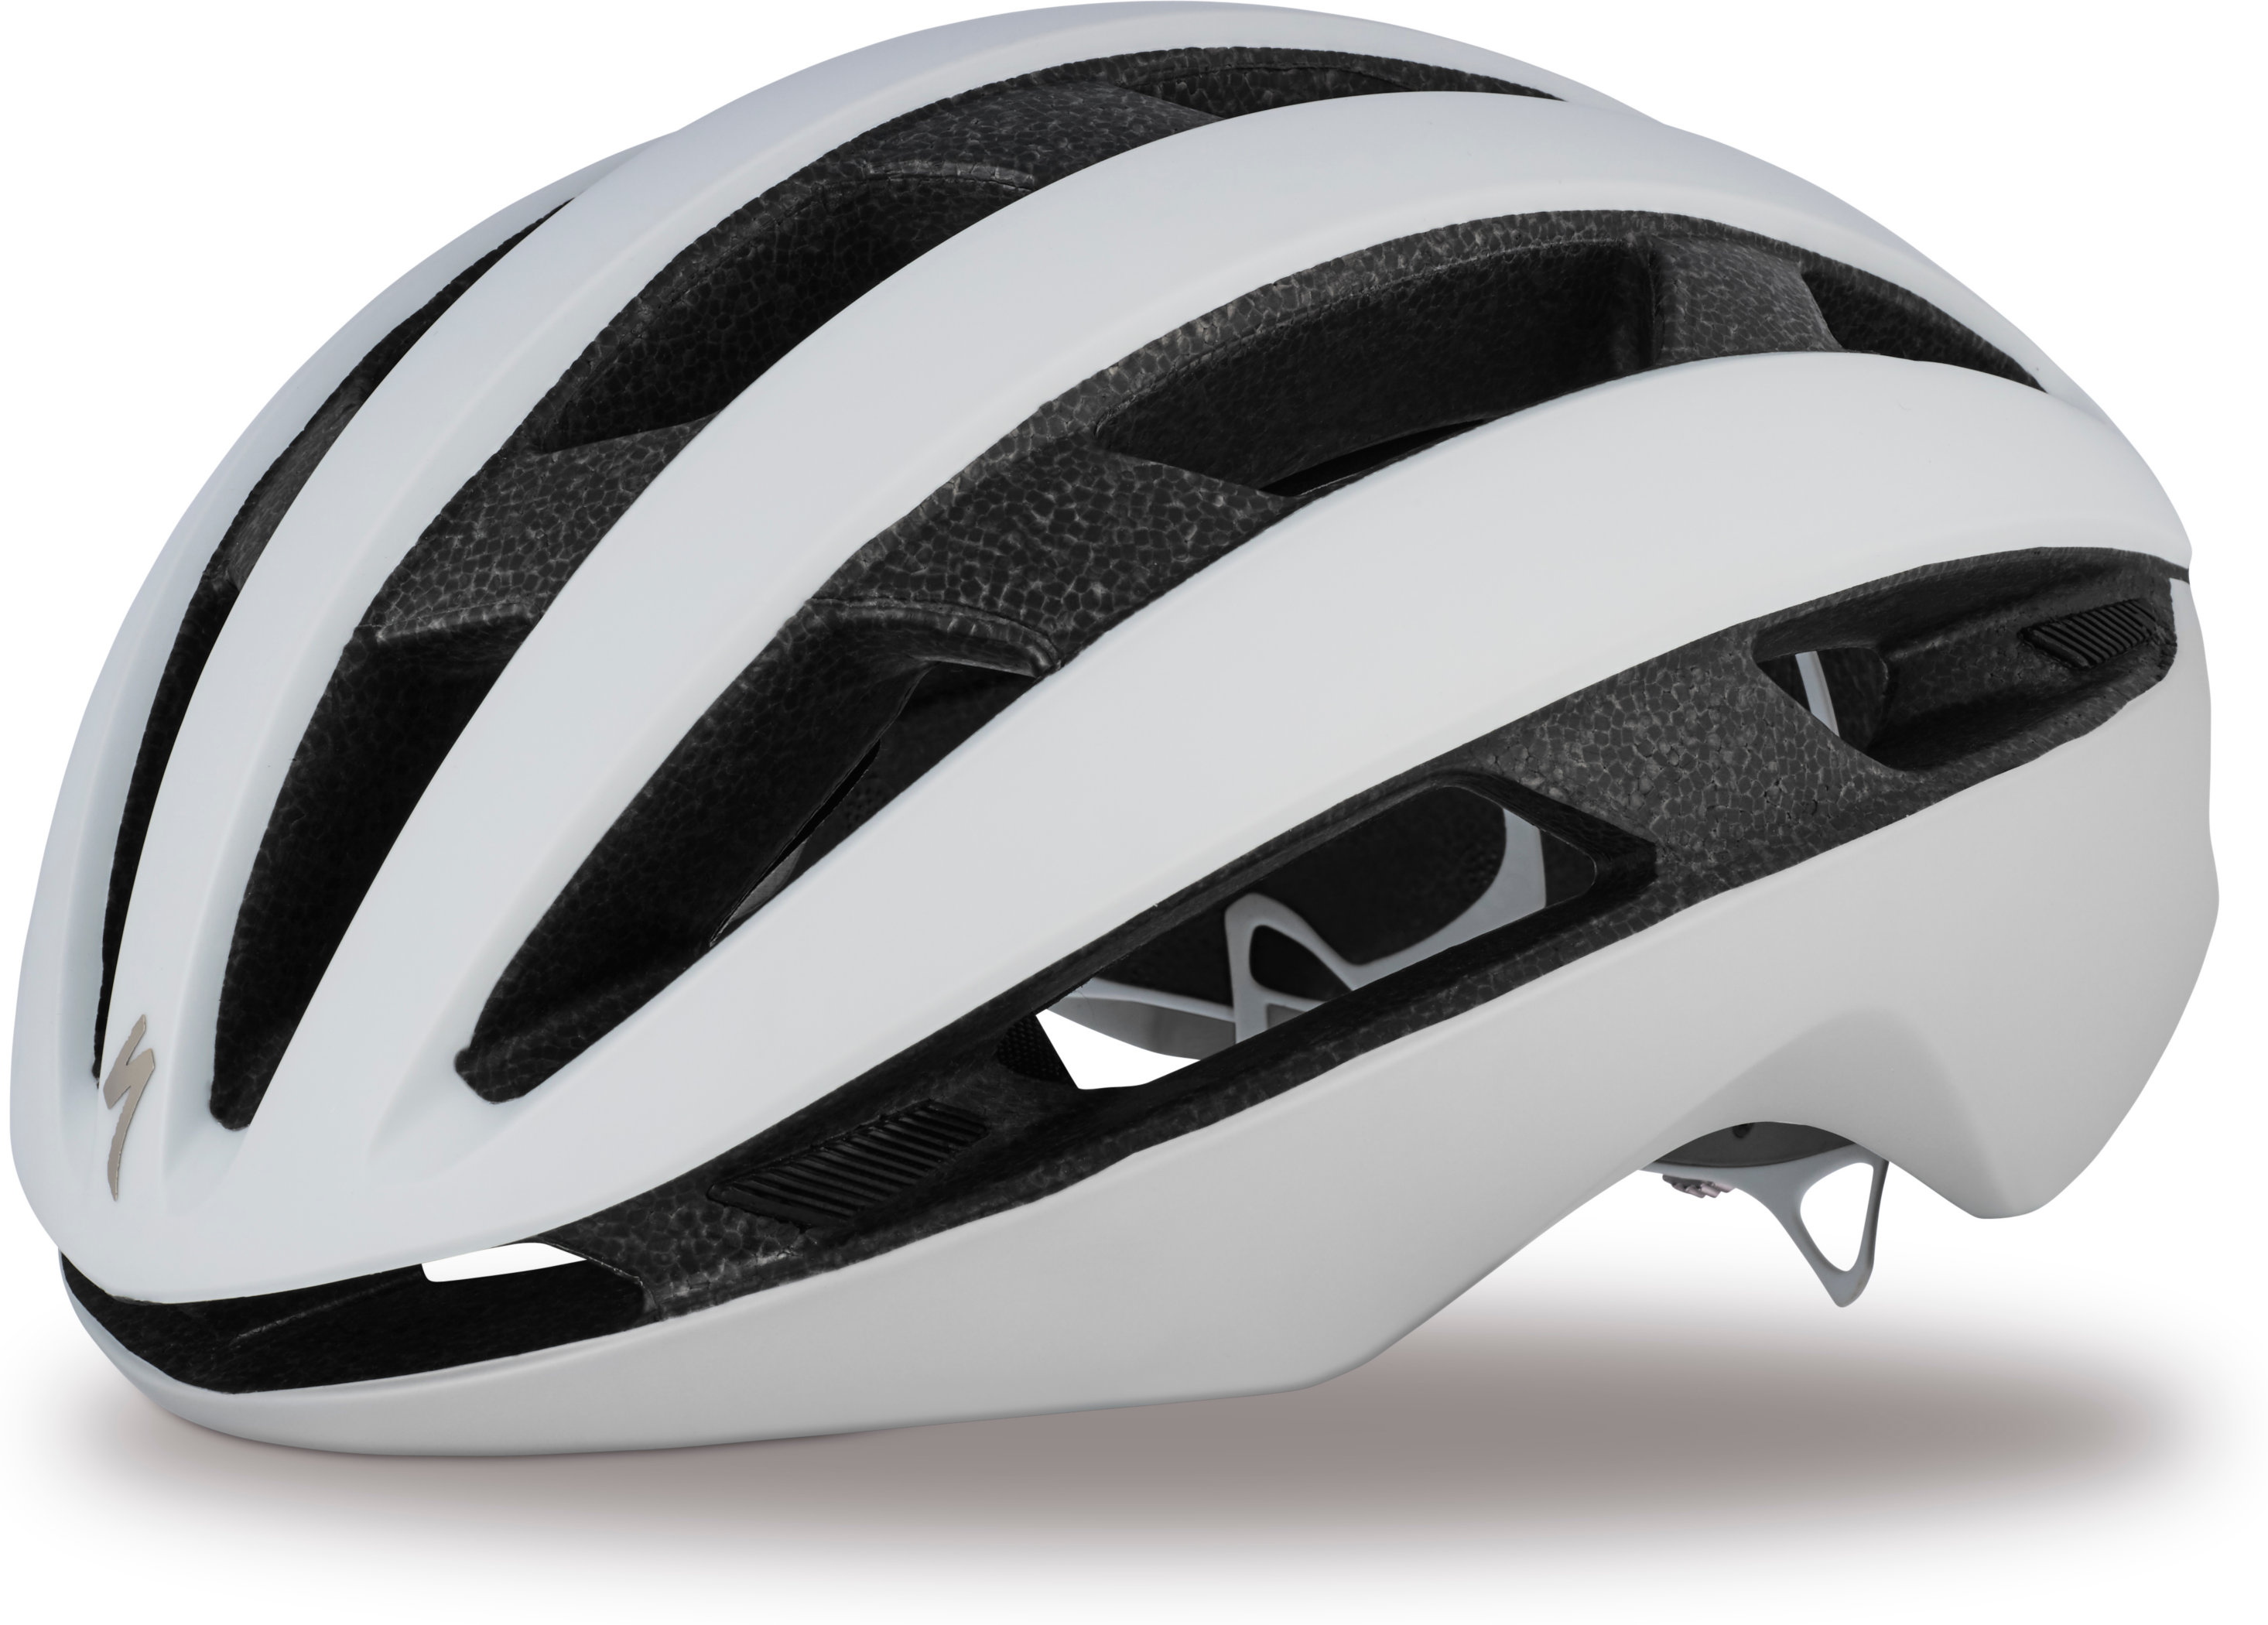 SPECIALIZED AIRNET HLMT CE WHT M - Bike Zone